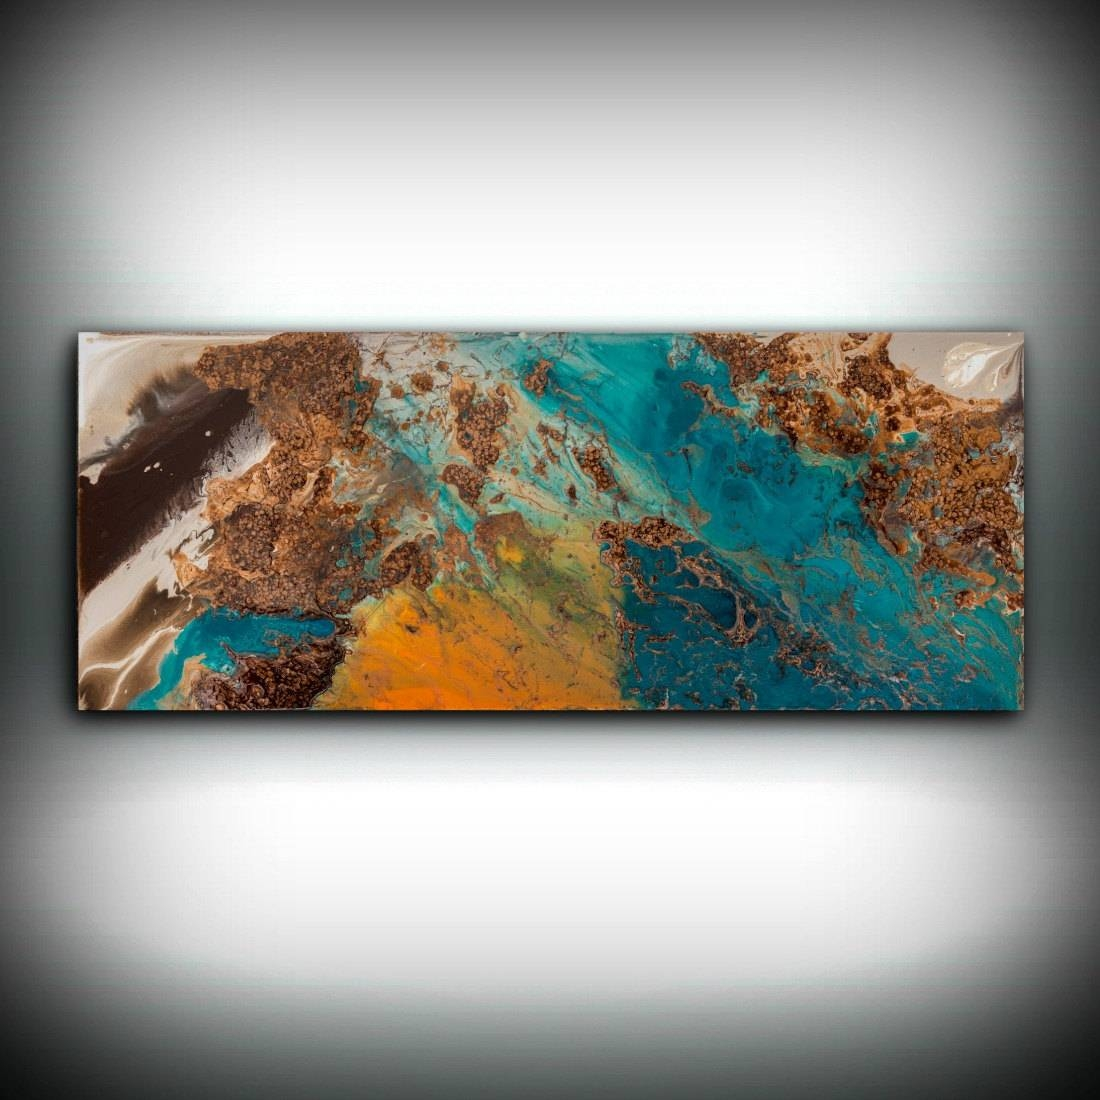 Sale Blue And Copper Art, Wall Art Prints Fine Art Prints Abstract Within Most Recent Orange And Turquoise Wall Art (View 18 of 20)